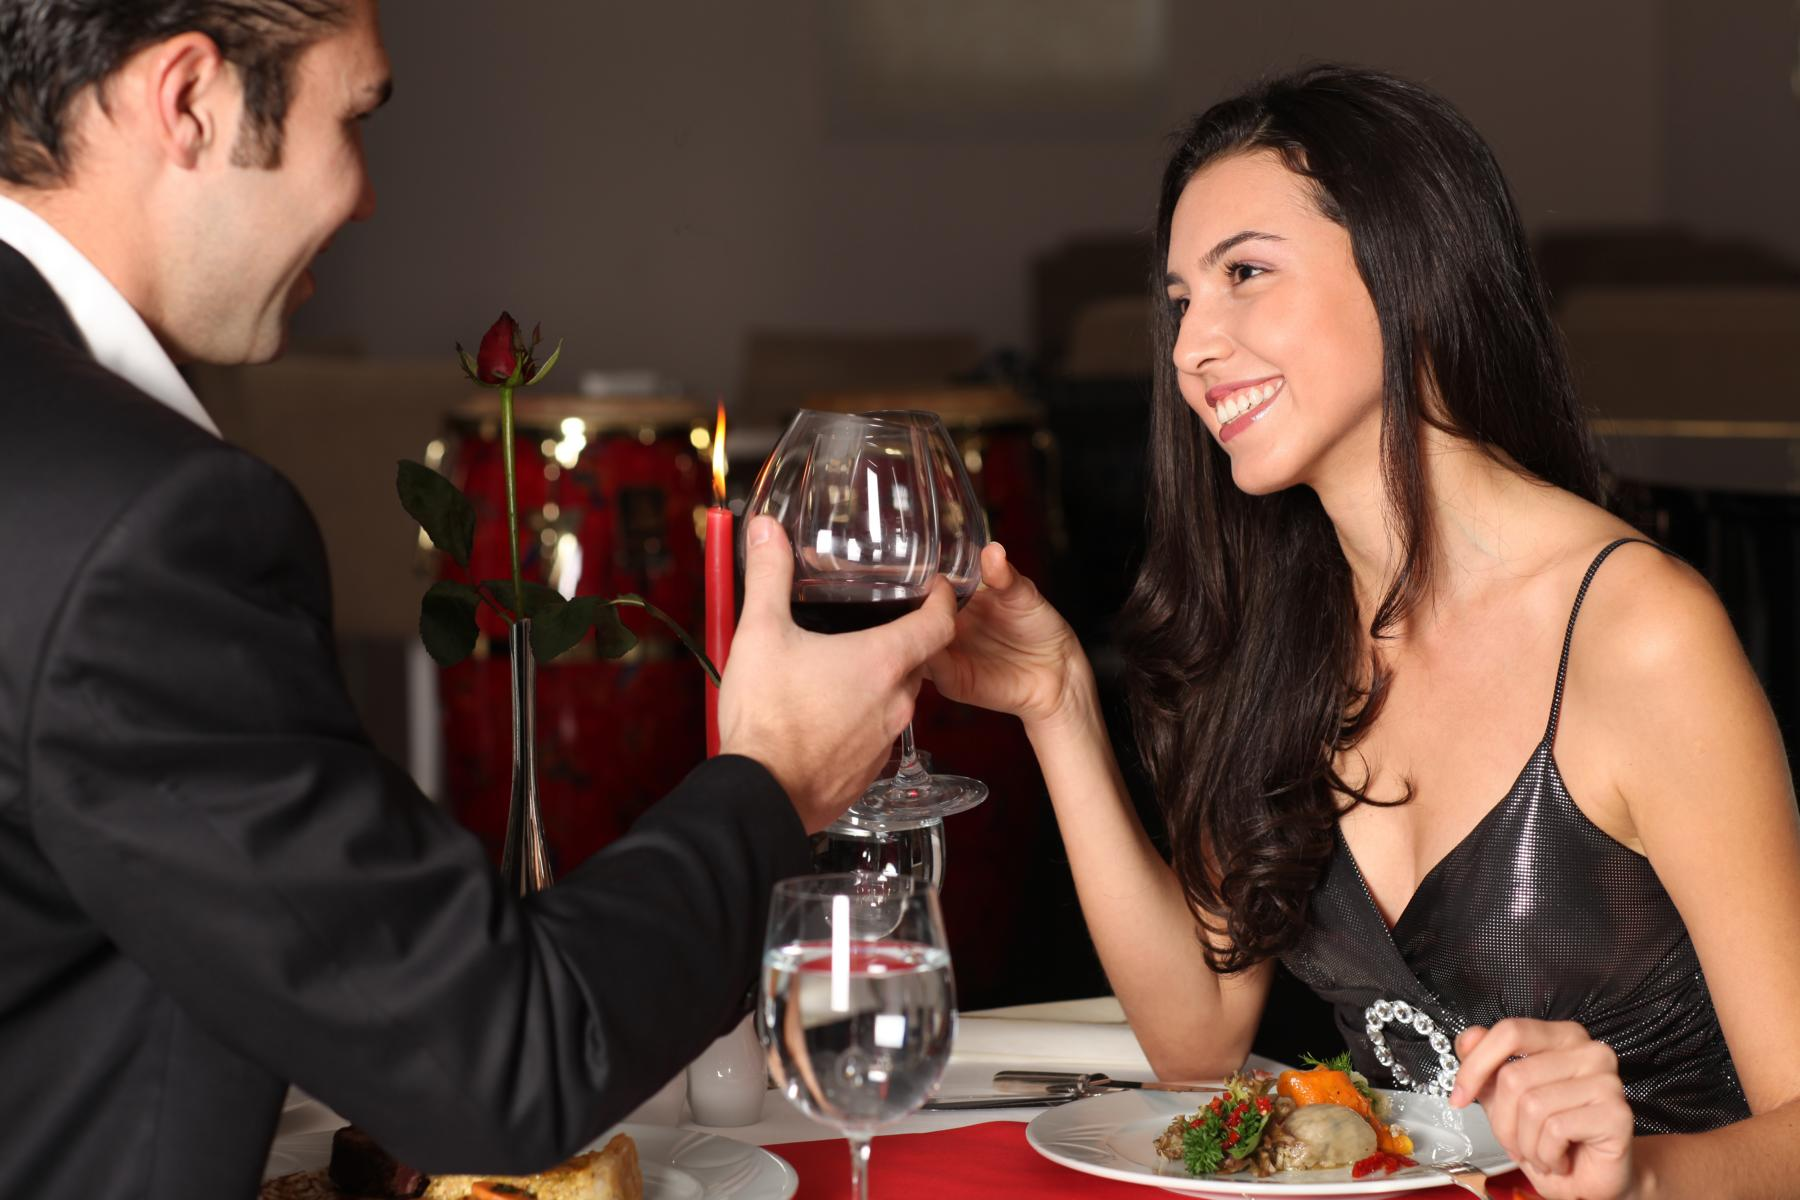 something is. Earlier best free online dating sites in india happens. Let's discuss